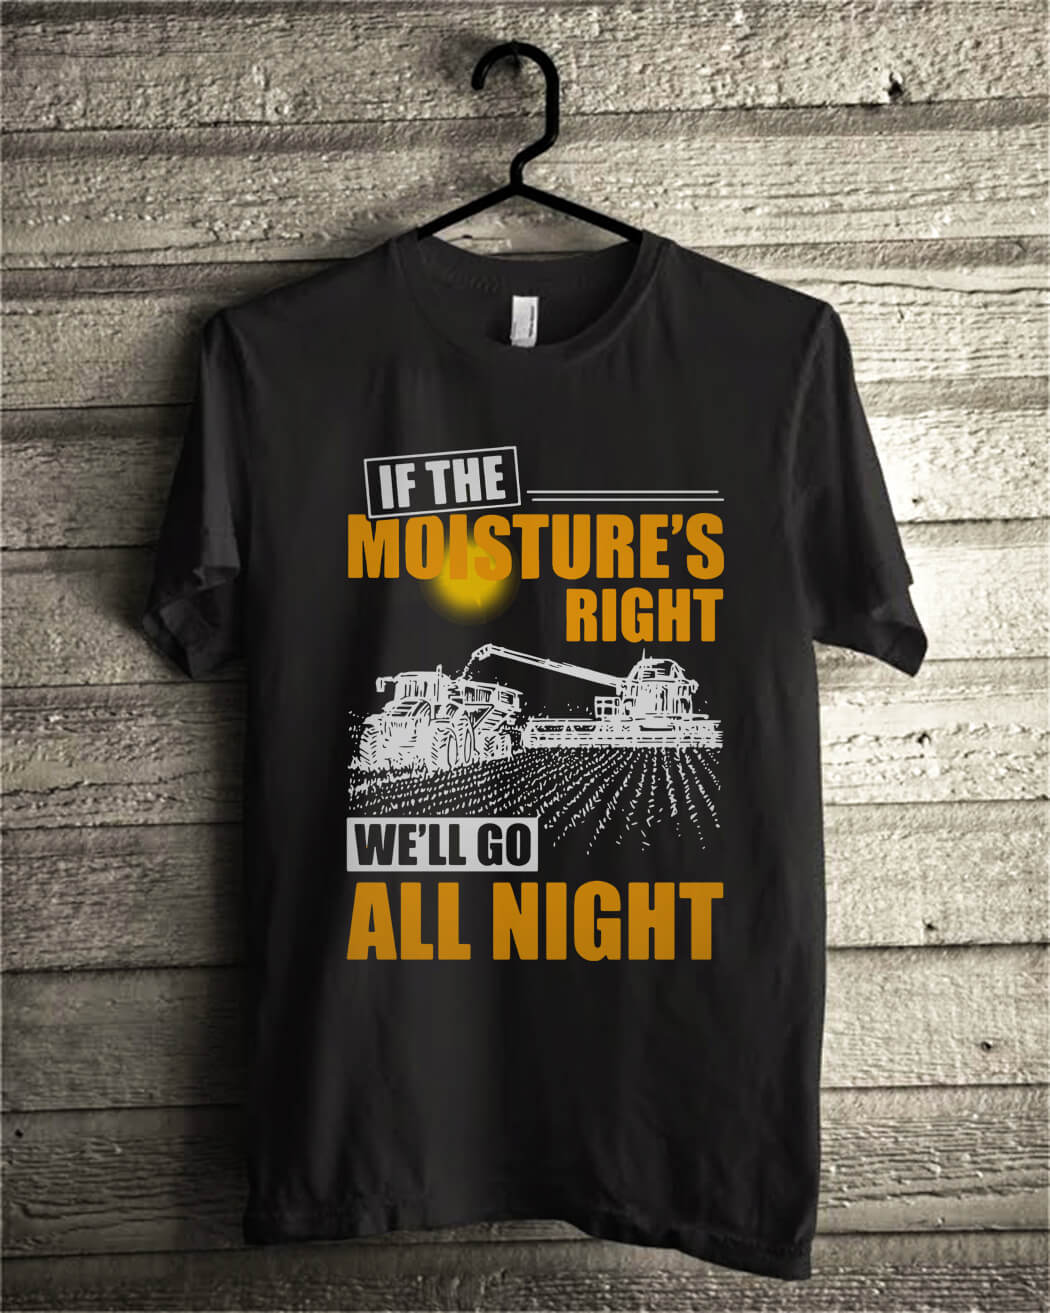 If the moistures right we'll go all night shirt